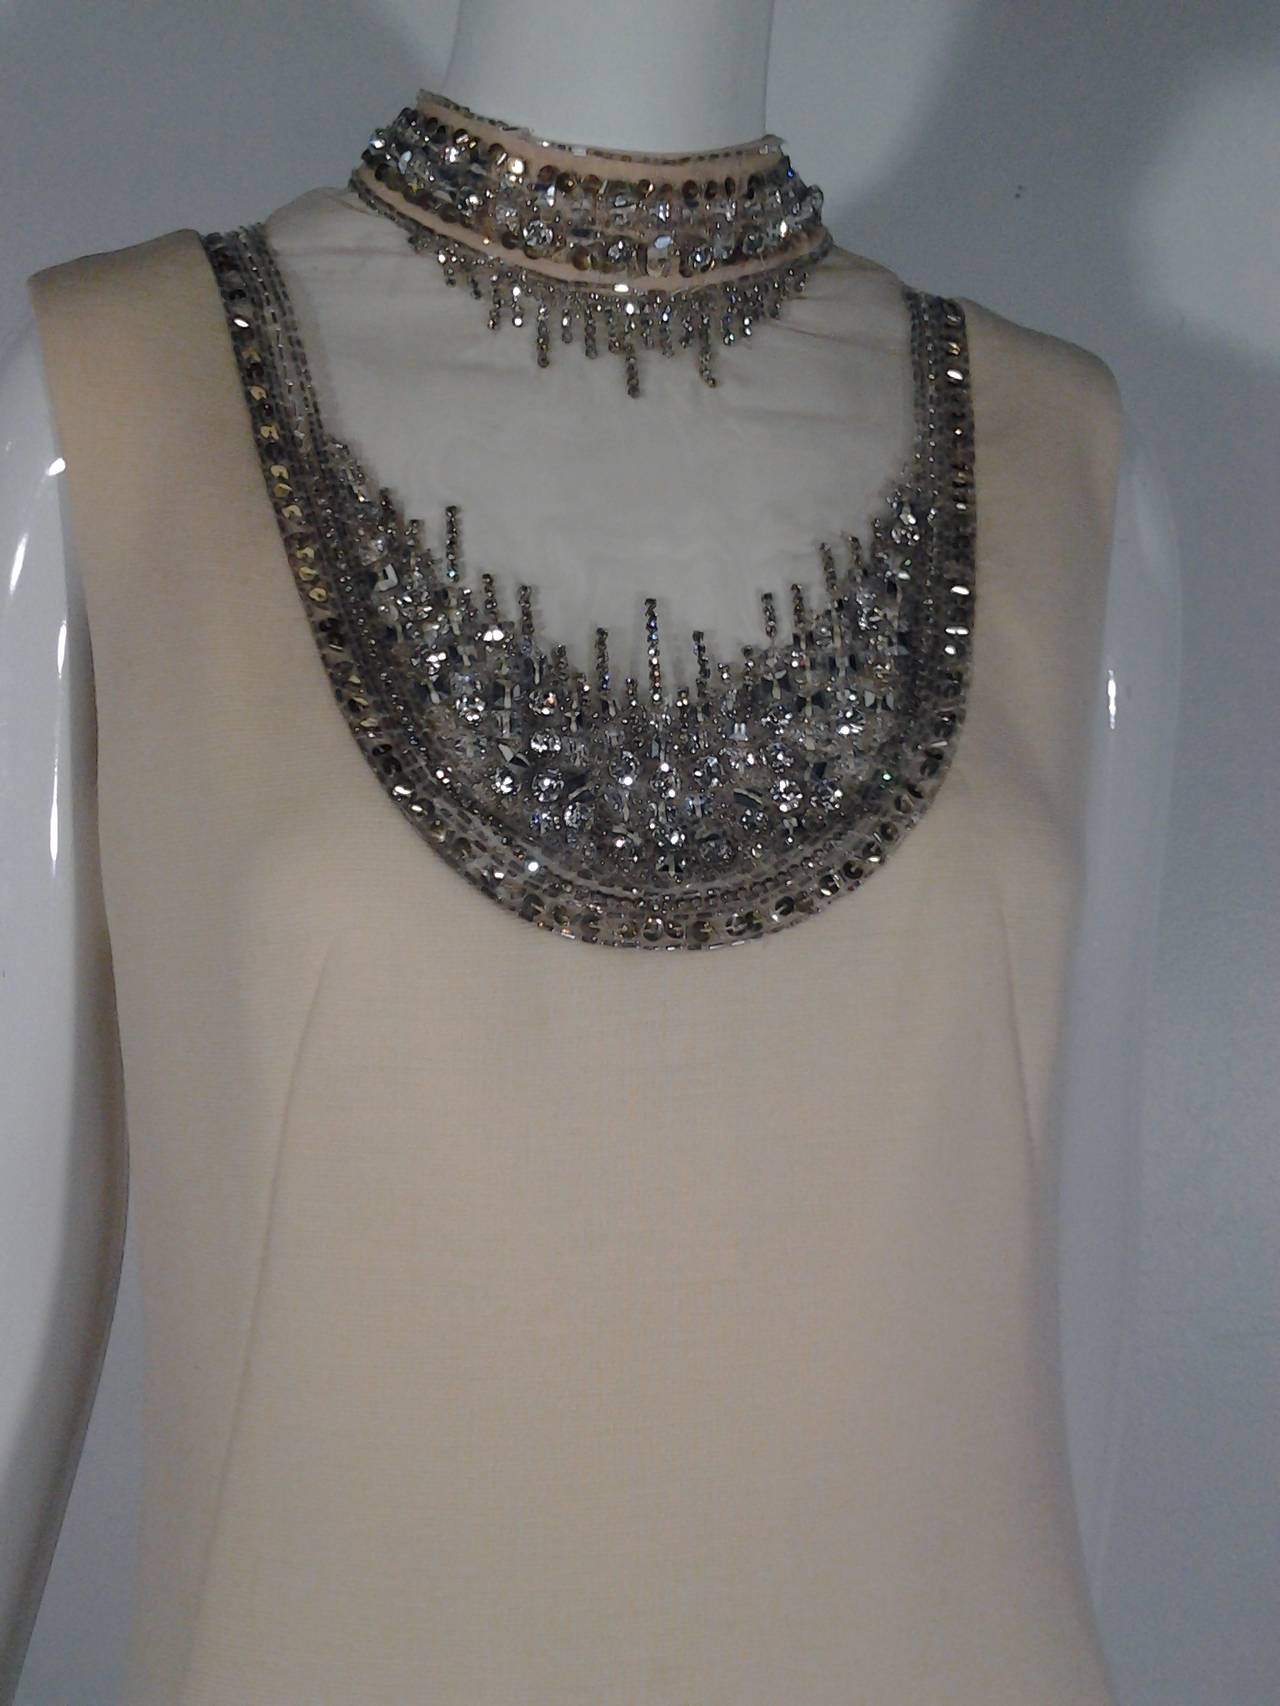 Mr Blackwell Cocktail Dress with Nude Panel and Elaborate Rhinestones 5